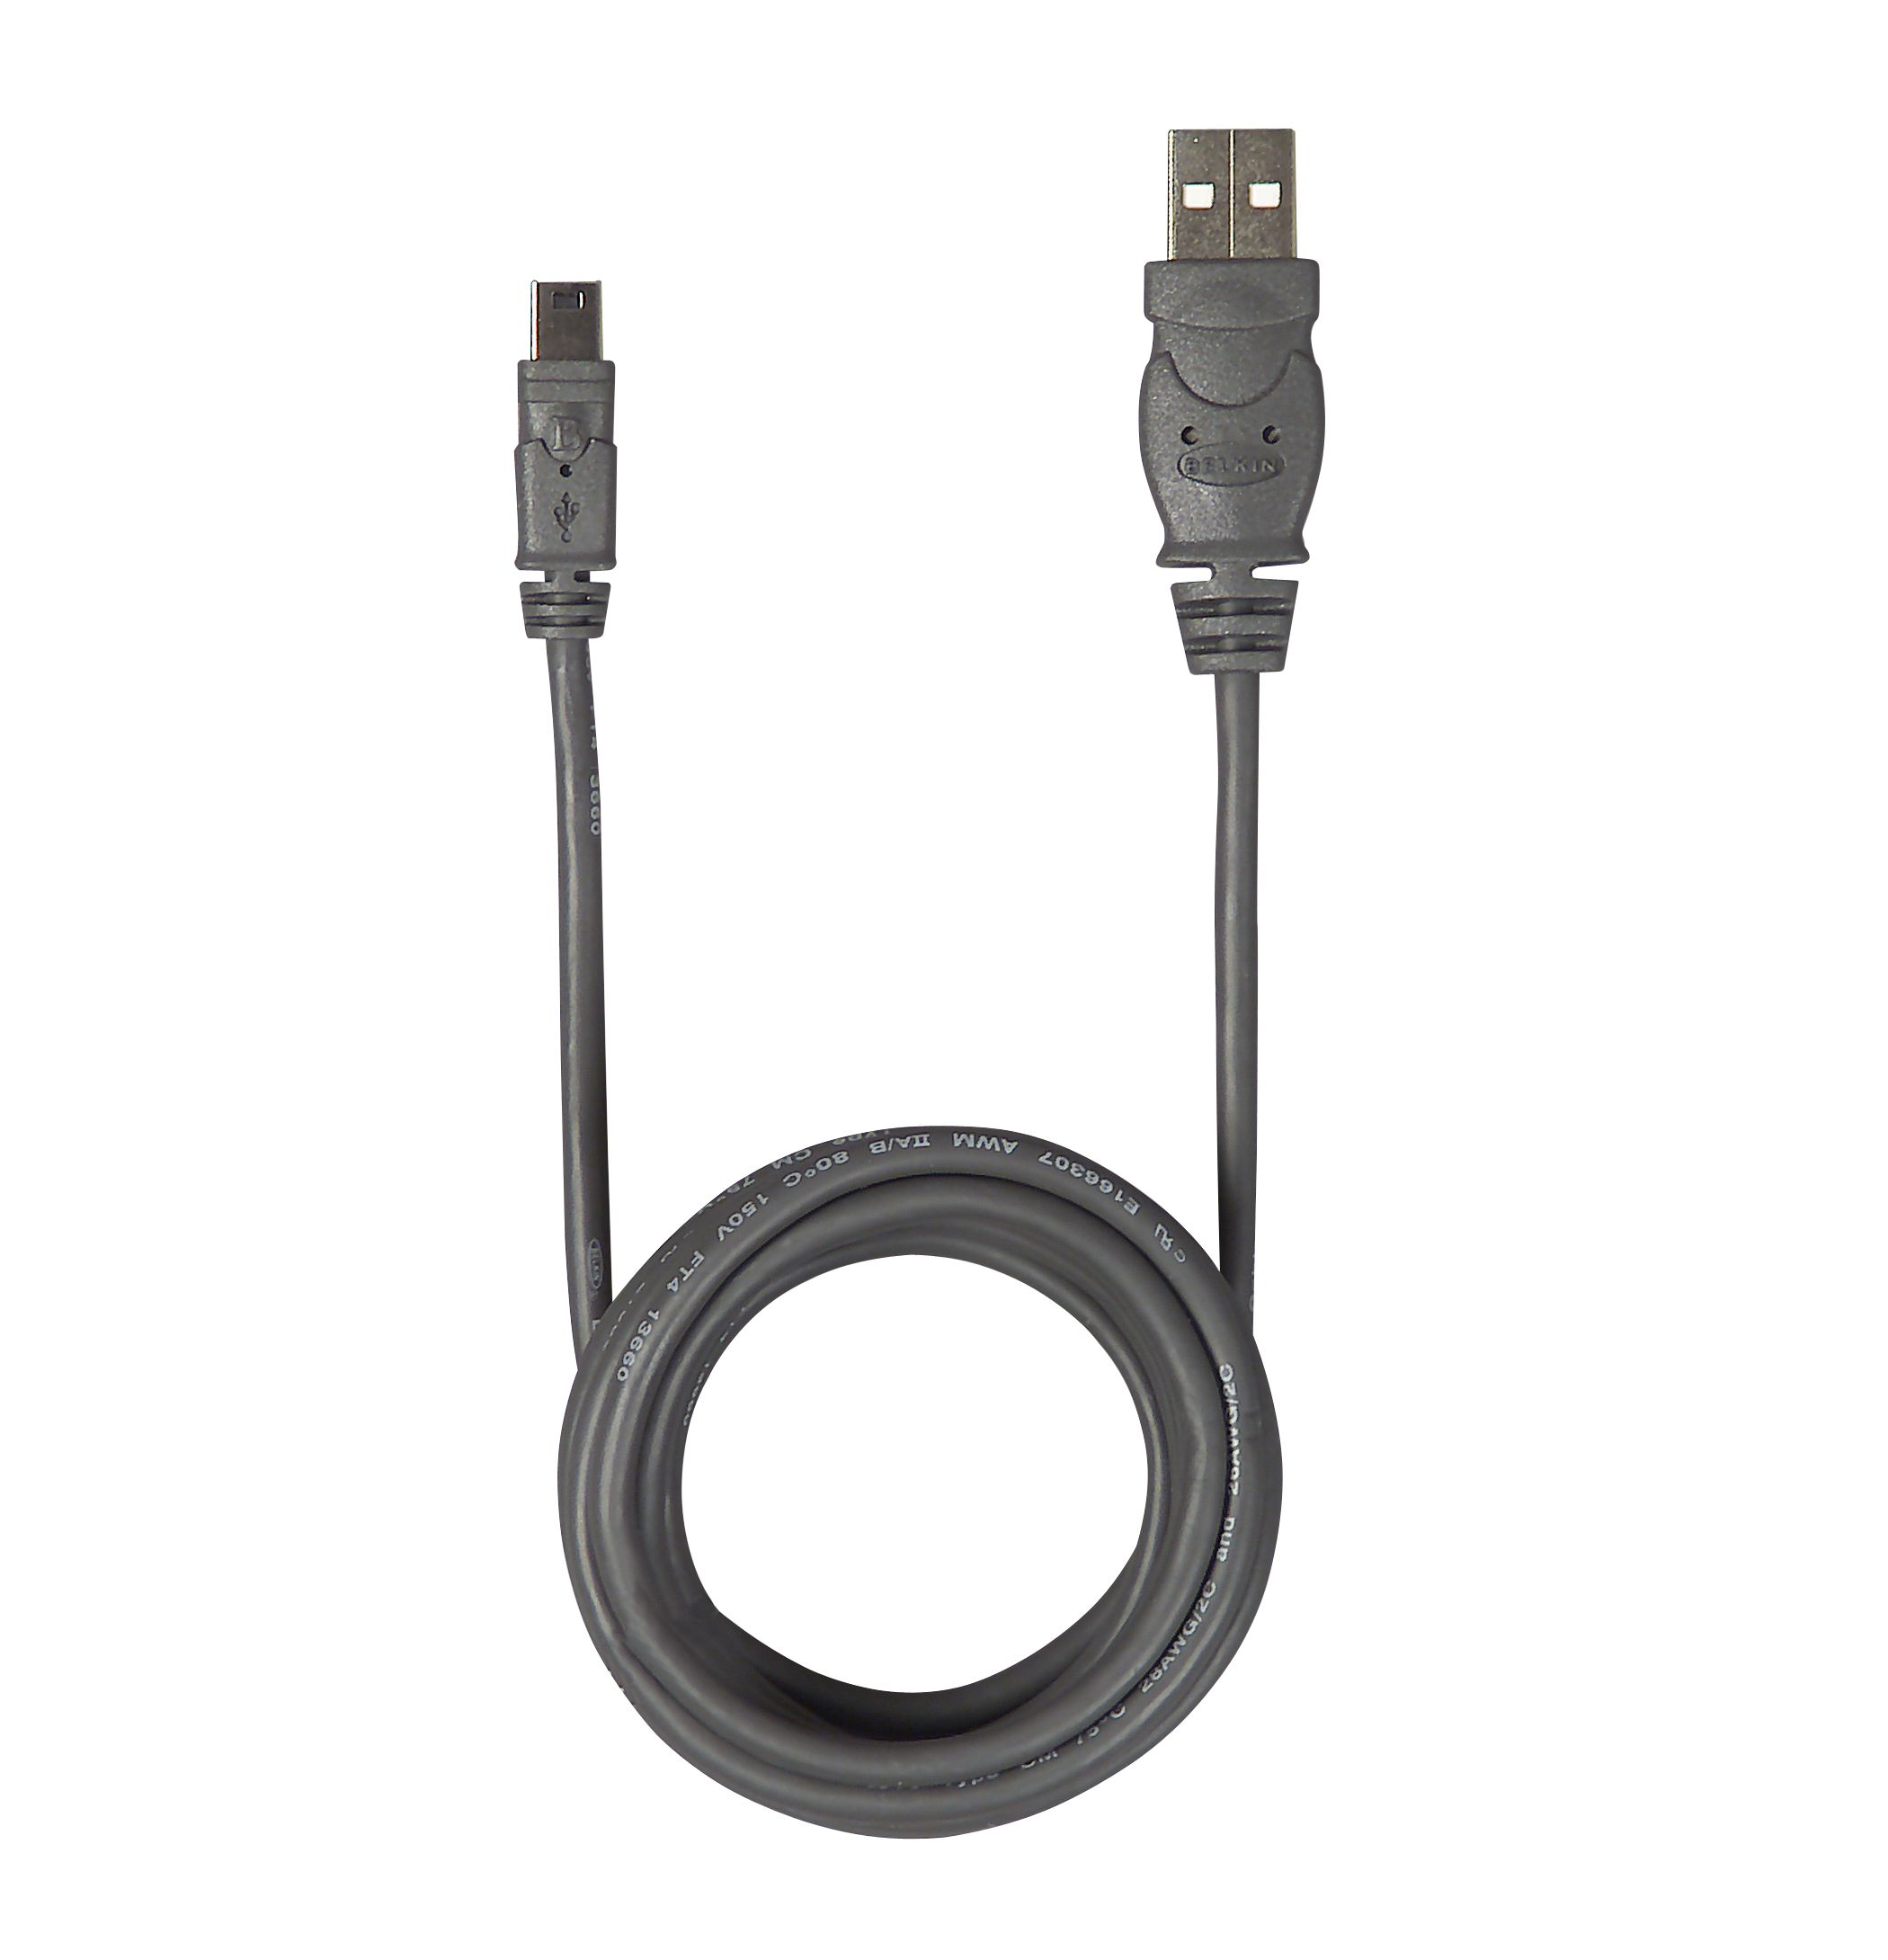 USB- 2.0 / MINI-B 5 pin Pro Cable, 6 ft.                                                                                         at mygofer.com